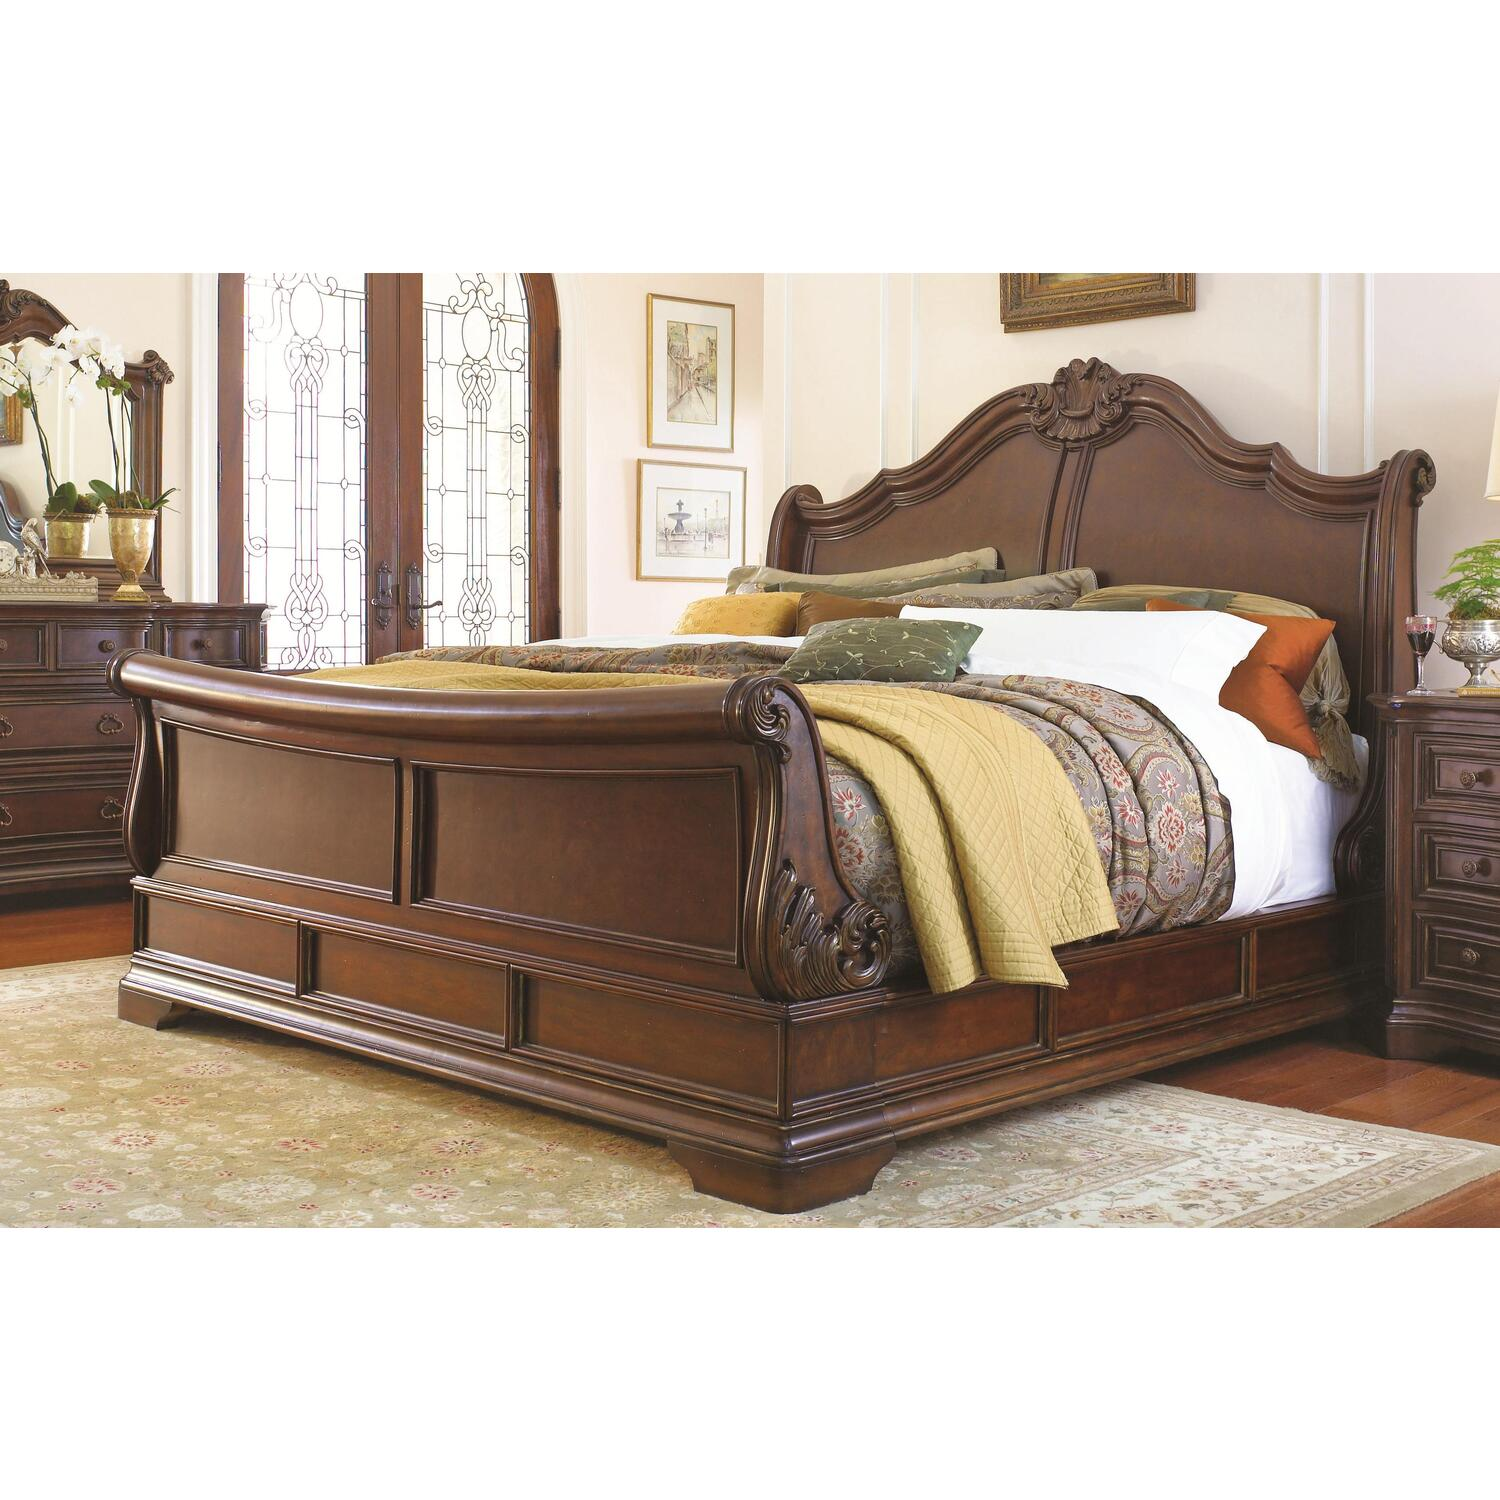 universal furniture casa verona california king sleigh bed by oj commerce 50977ck 2. Black Bedroom Furniture Sets. Home Design Ideas